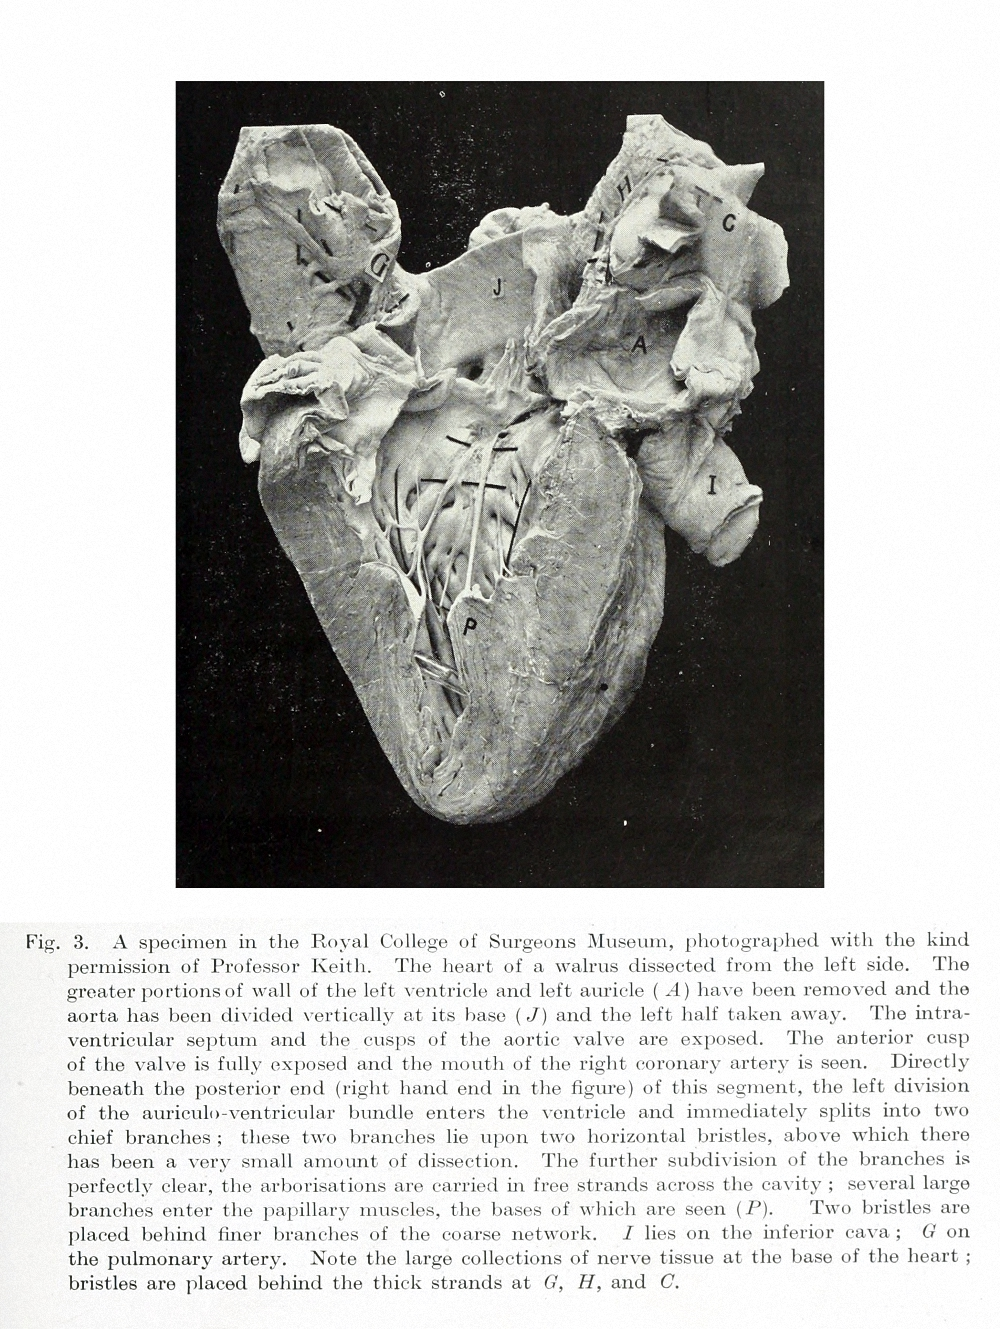 """Figure 10:The left bundle branch and its divisions are shown in a dissection of a walrus heart. This illustration is from """"The Mechanism of the Heart Beat""""."""